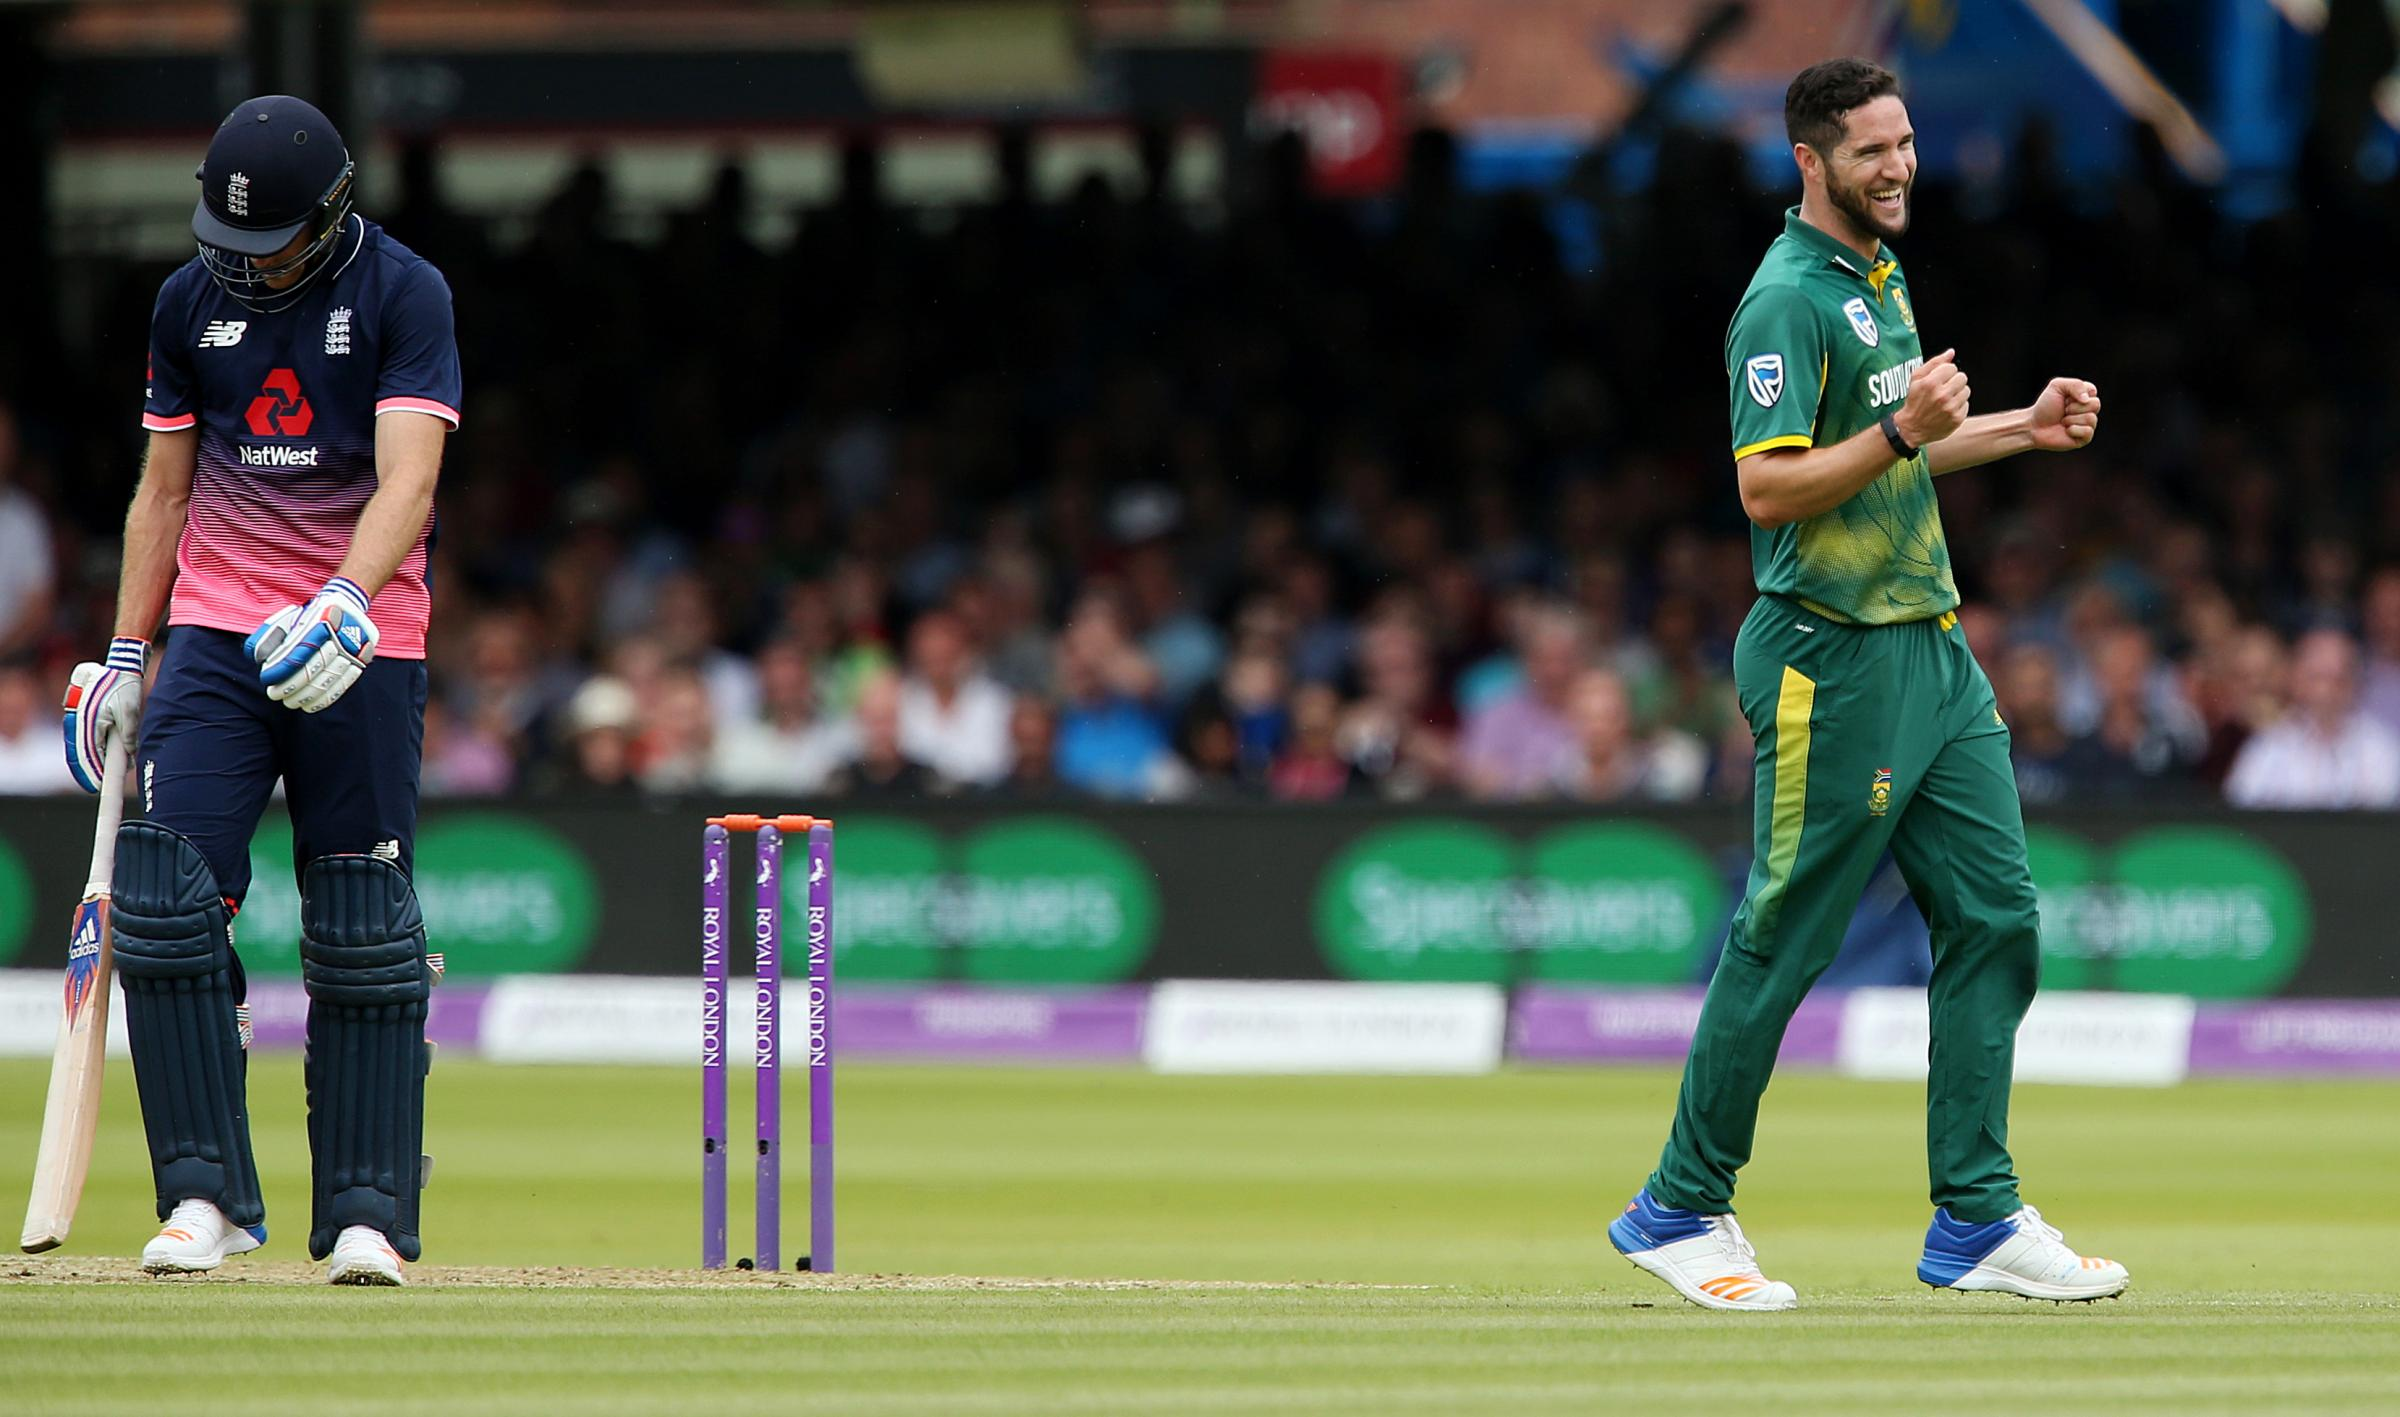 OVERSEAS ACTION: Worcestershire's South Africa international Wayne Parnell (right). PIC: PA